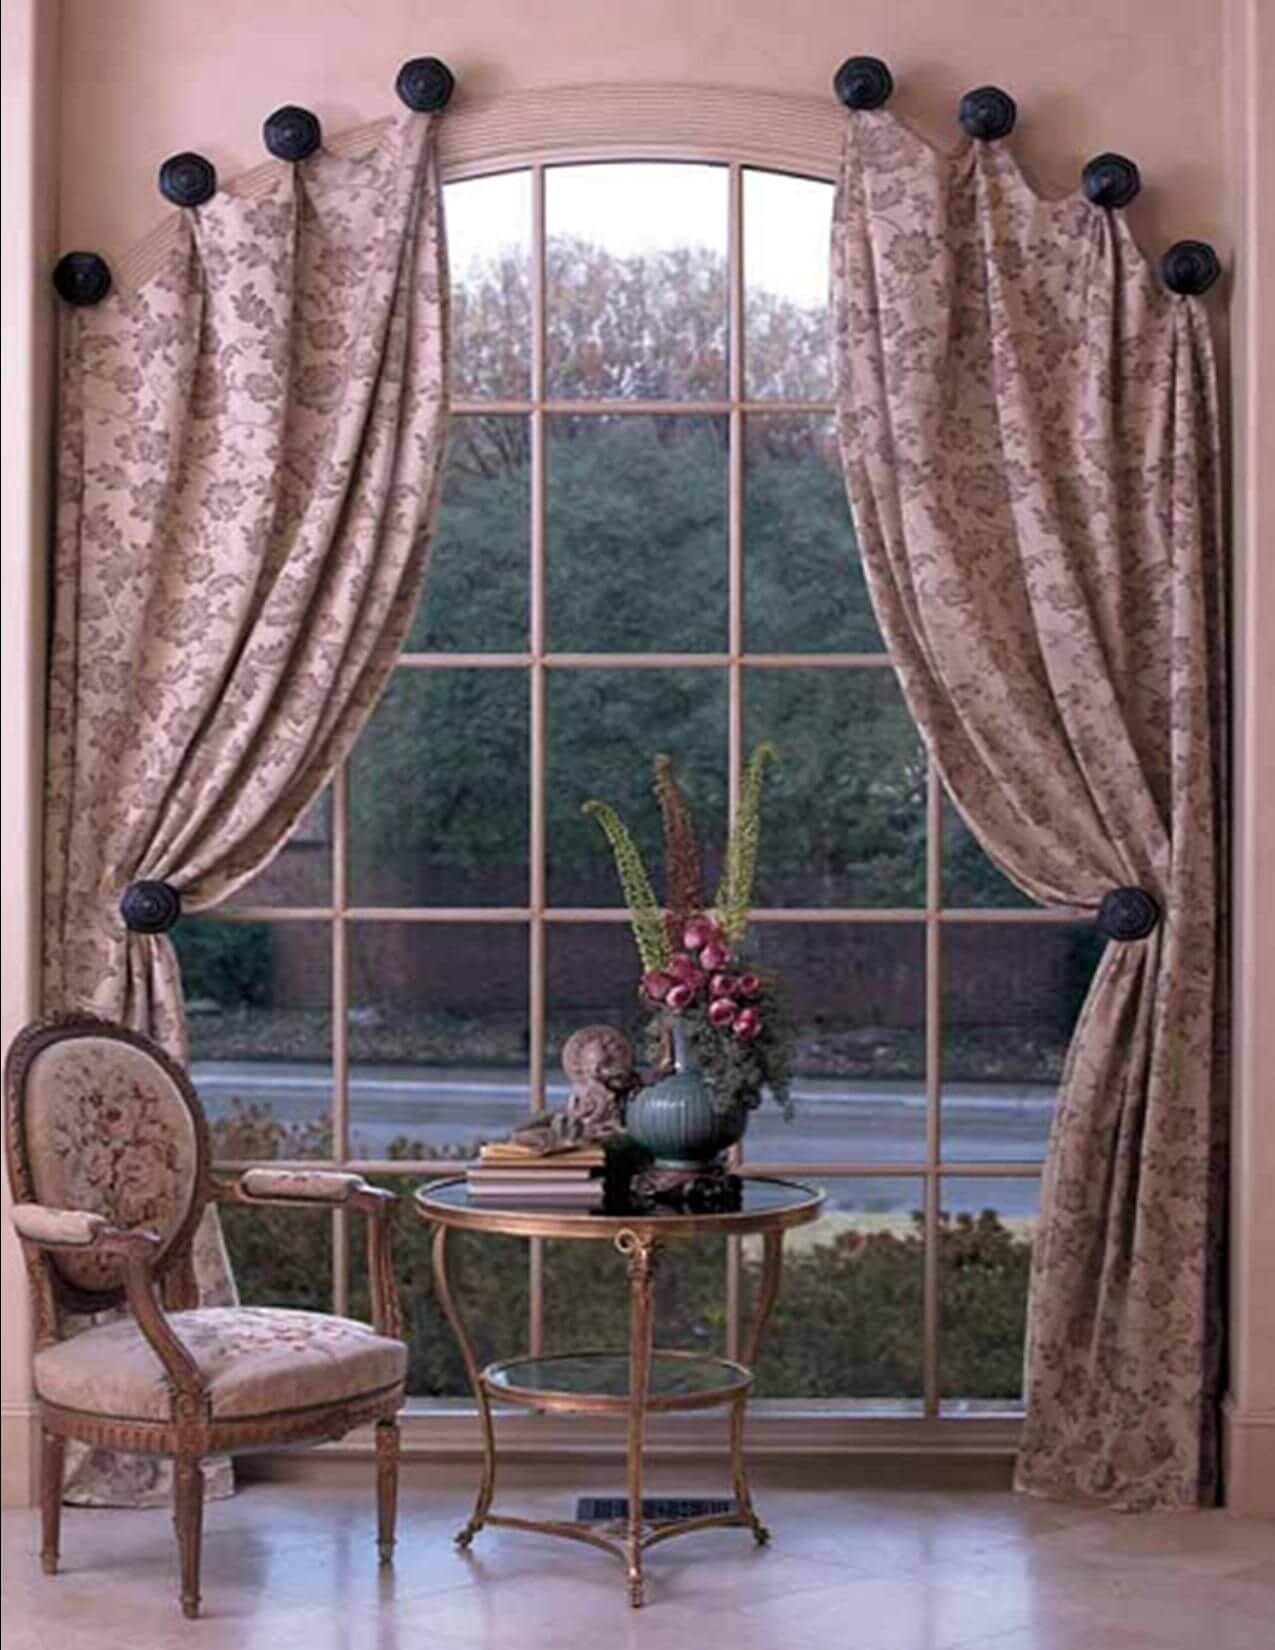 Pom-Pom tieback curtains